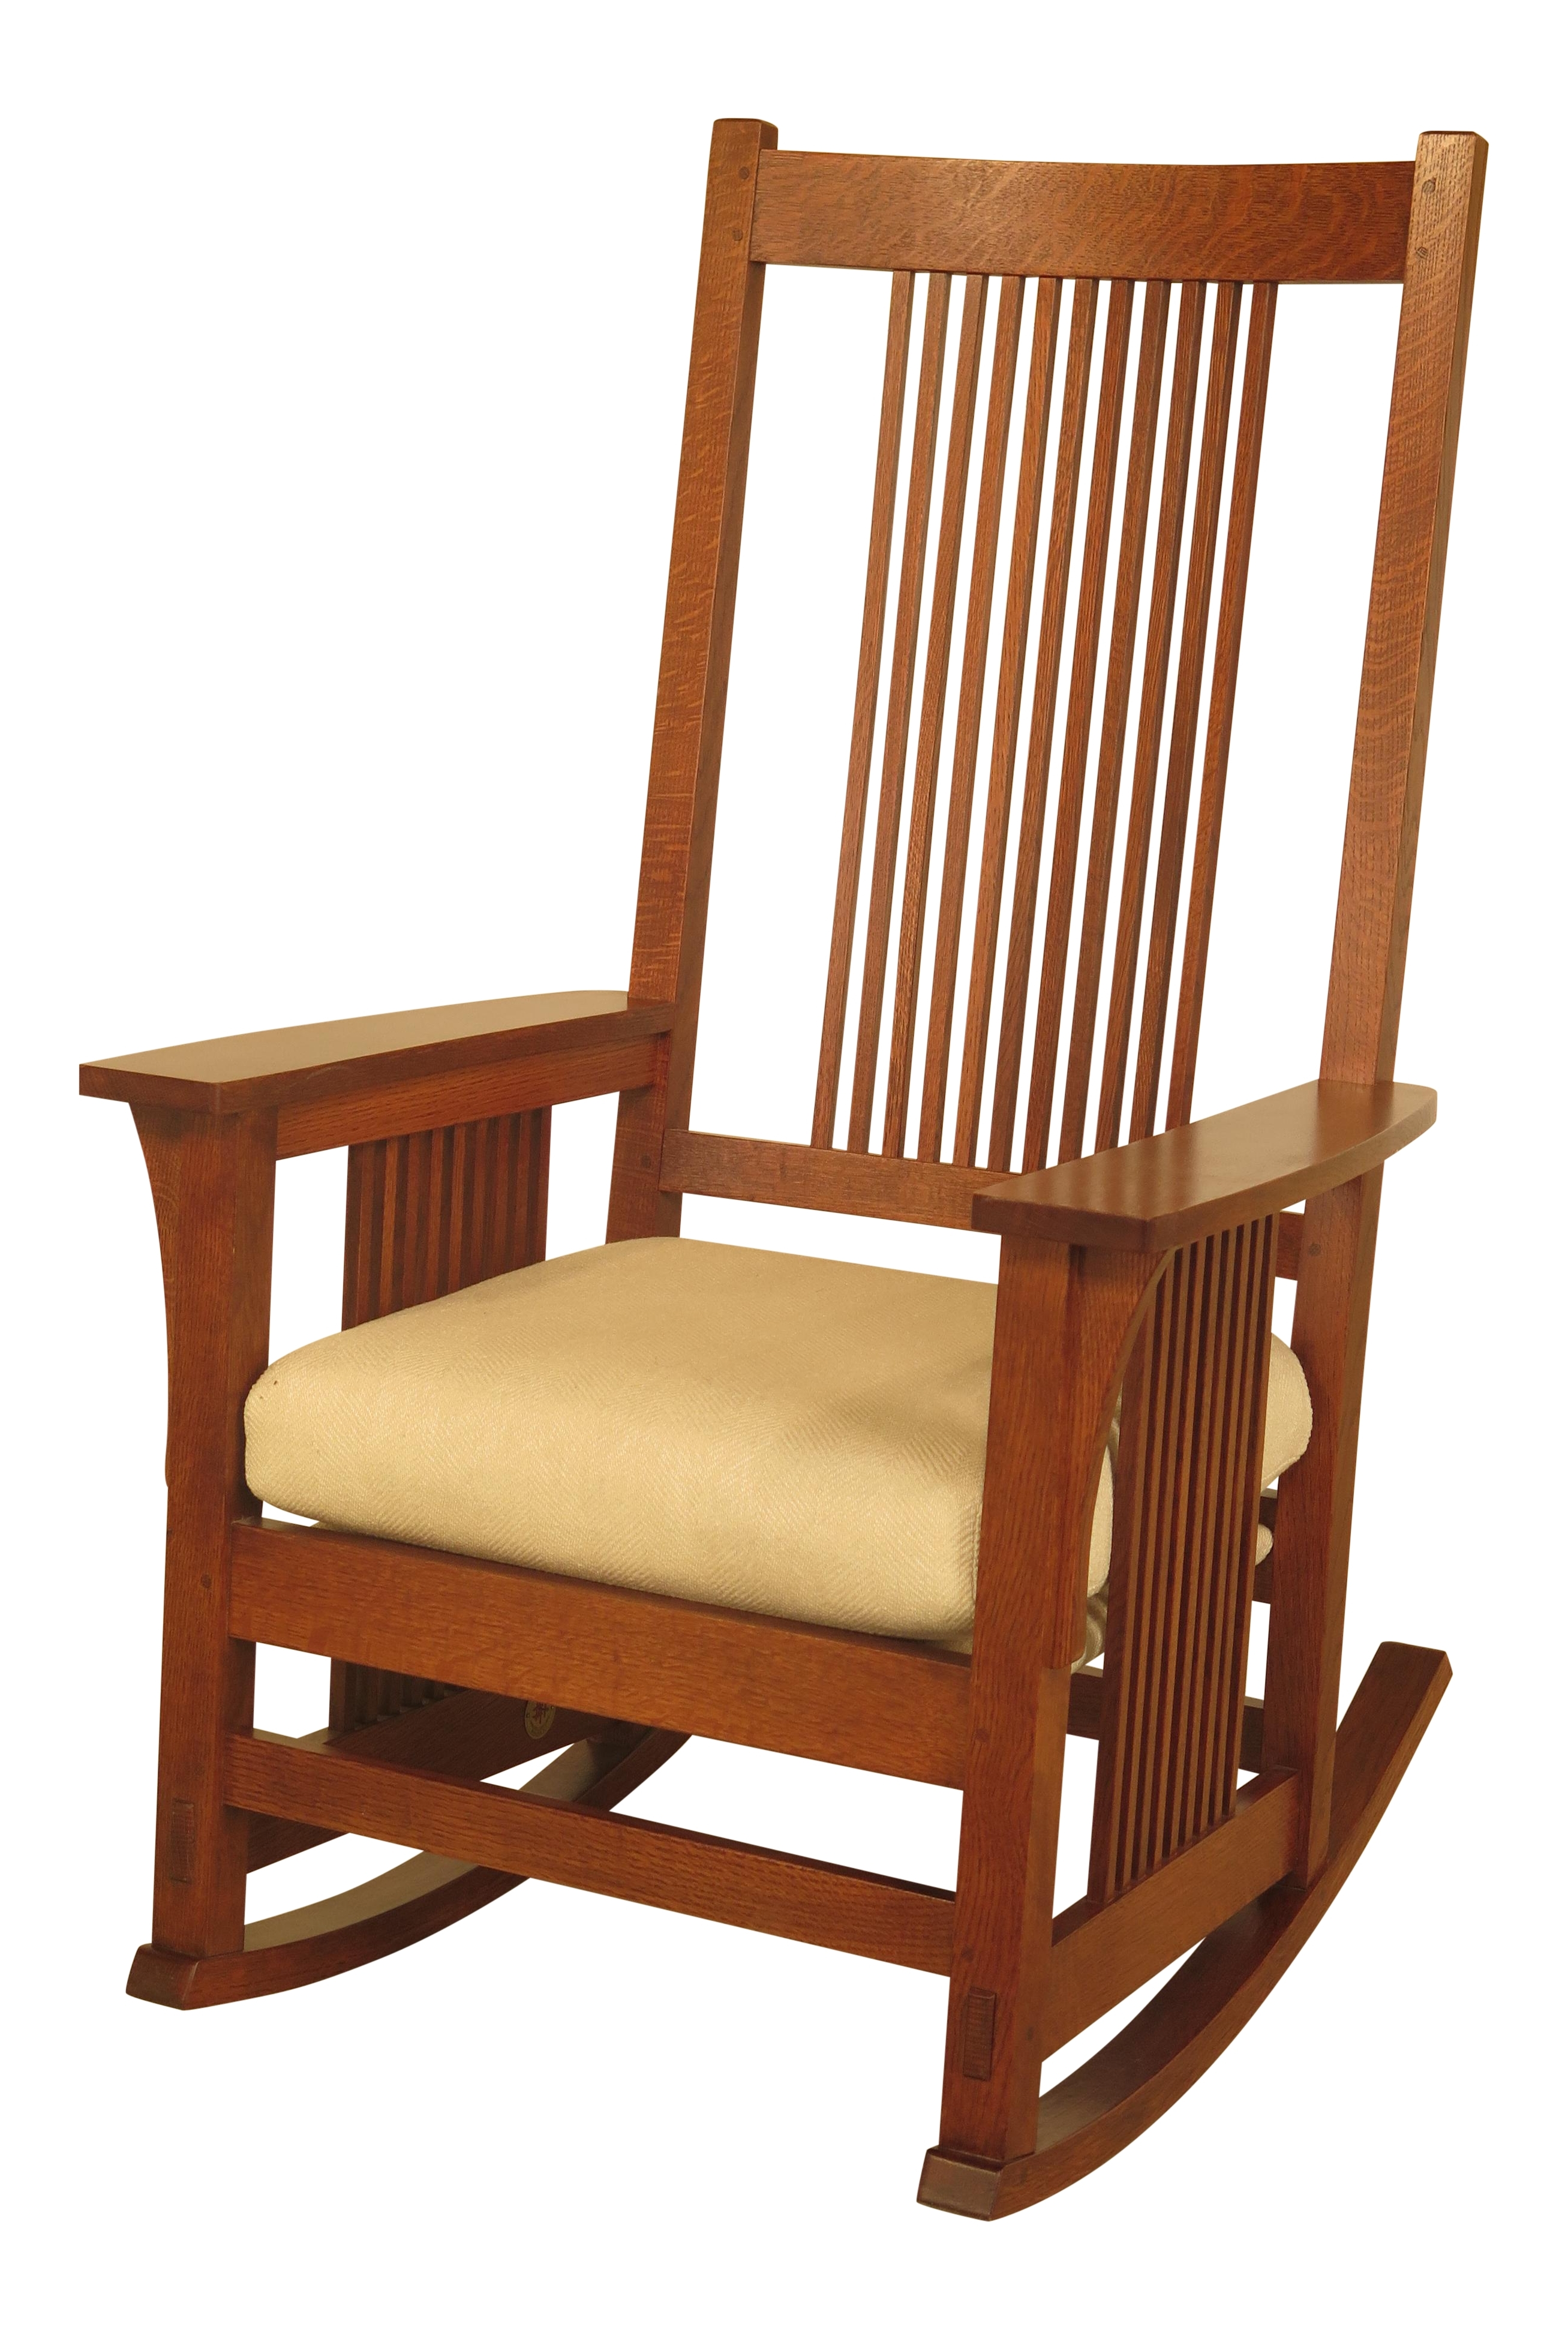 Stickley Spindle Back Mission Oak Rocking Chair Chairish Chairs With Intended For Rocking Chairs With Lumbar Support (View 15 of 15)